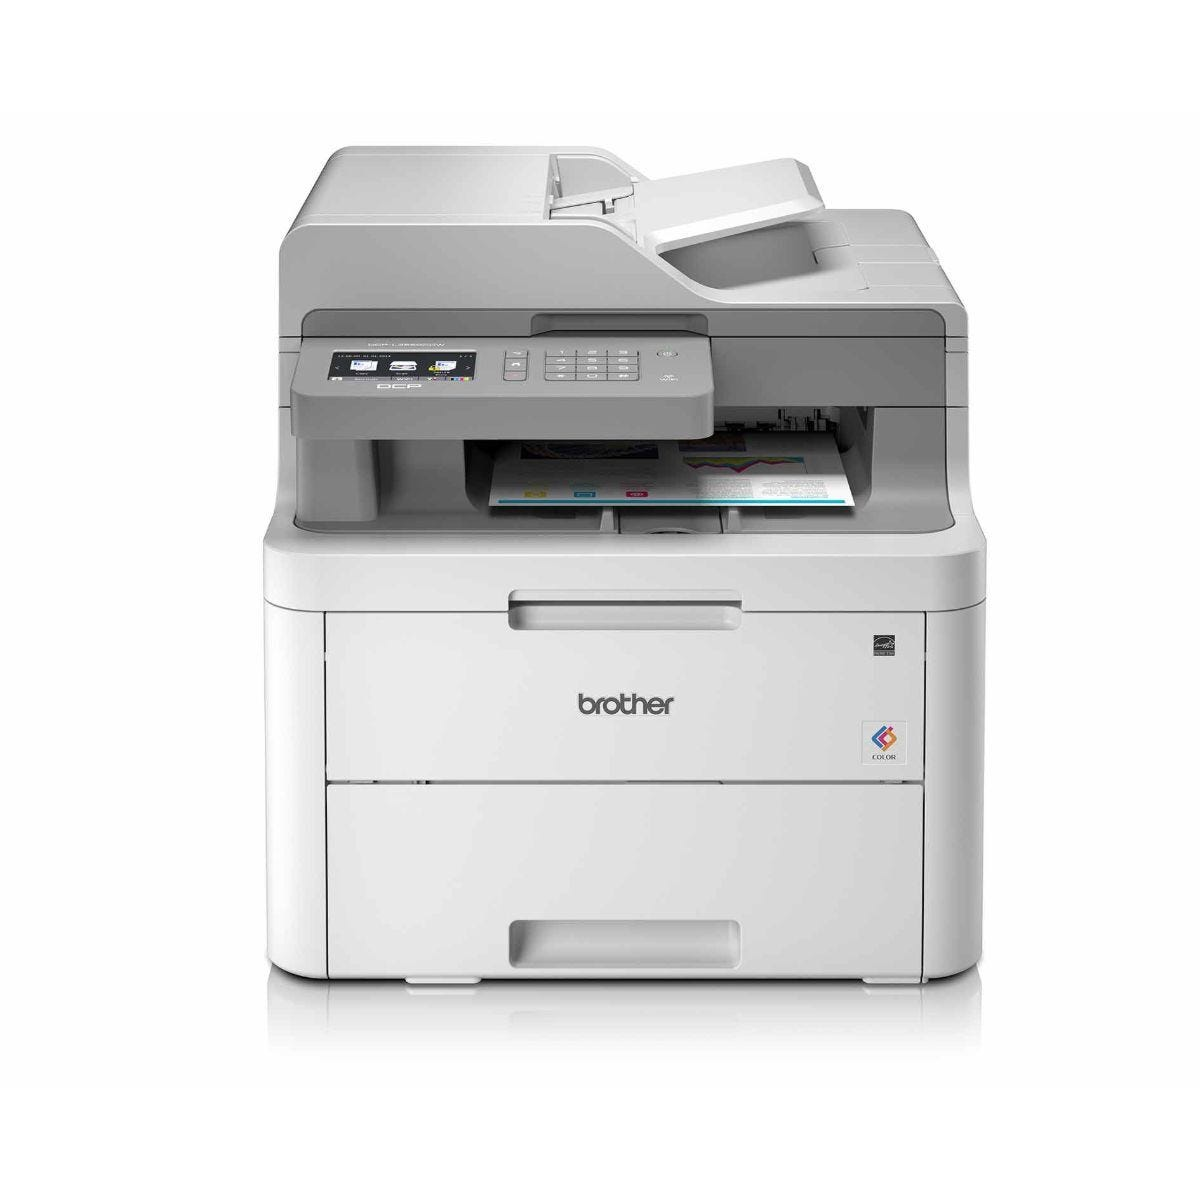 Brother DCP-L3550CDW All in One Wireless LED Printer